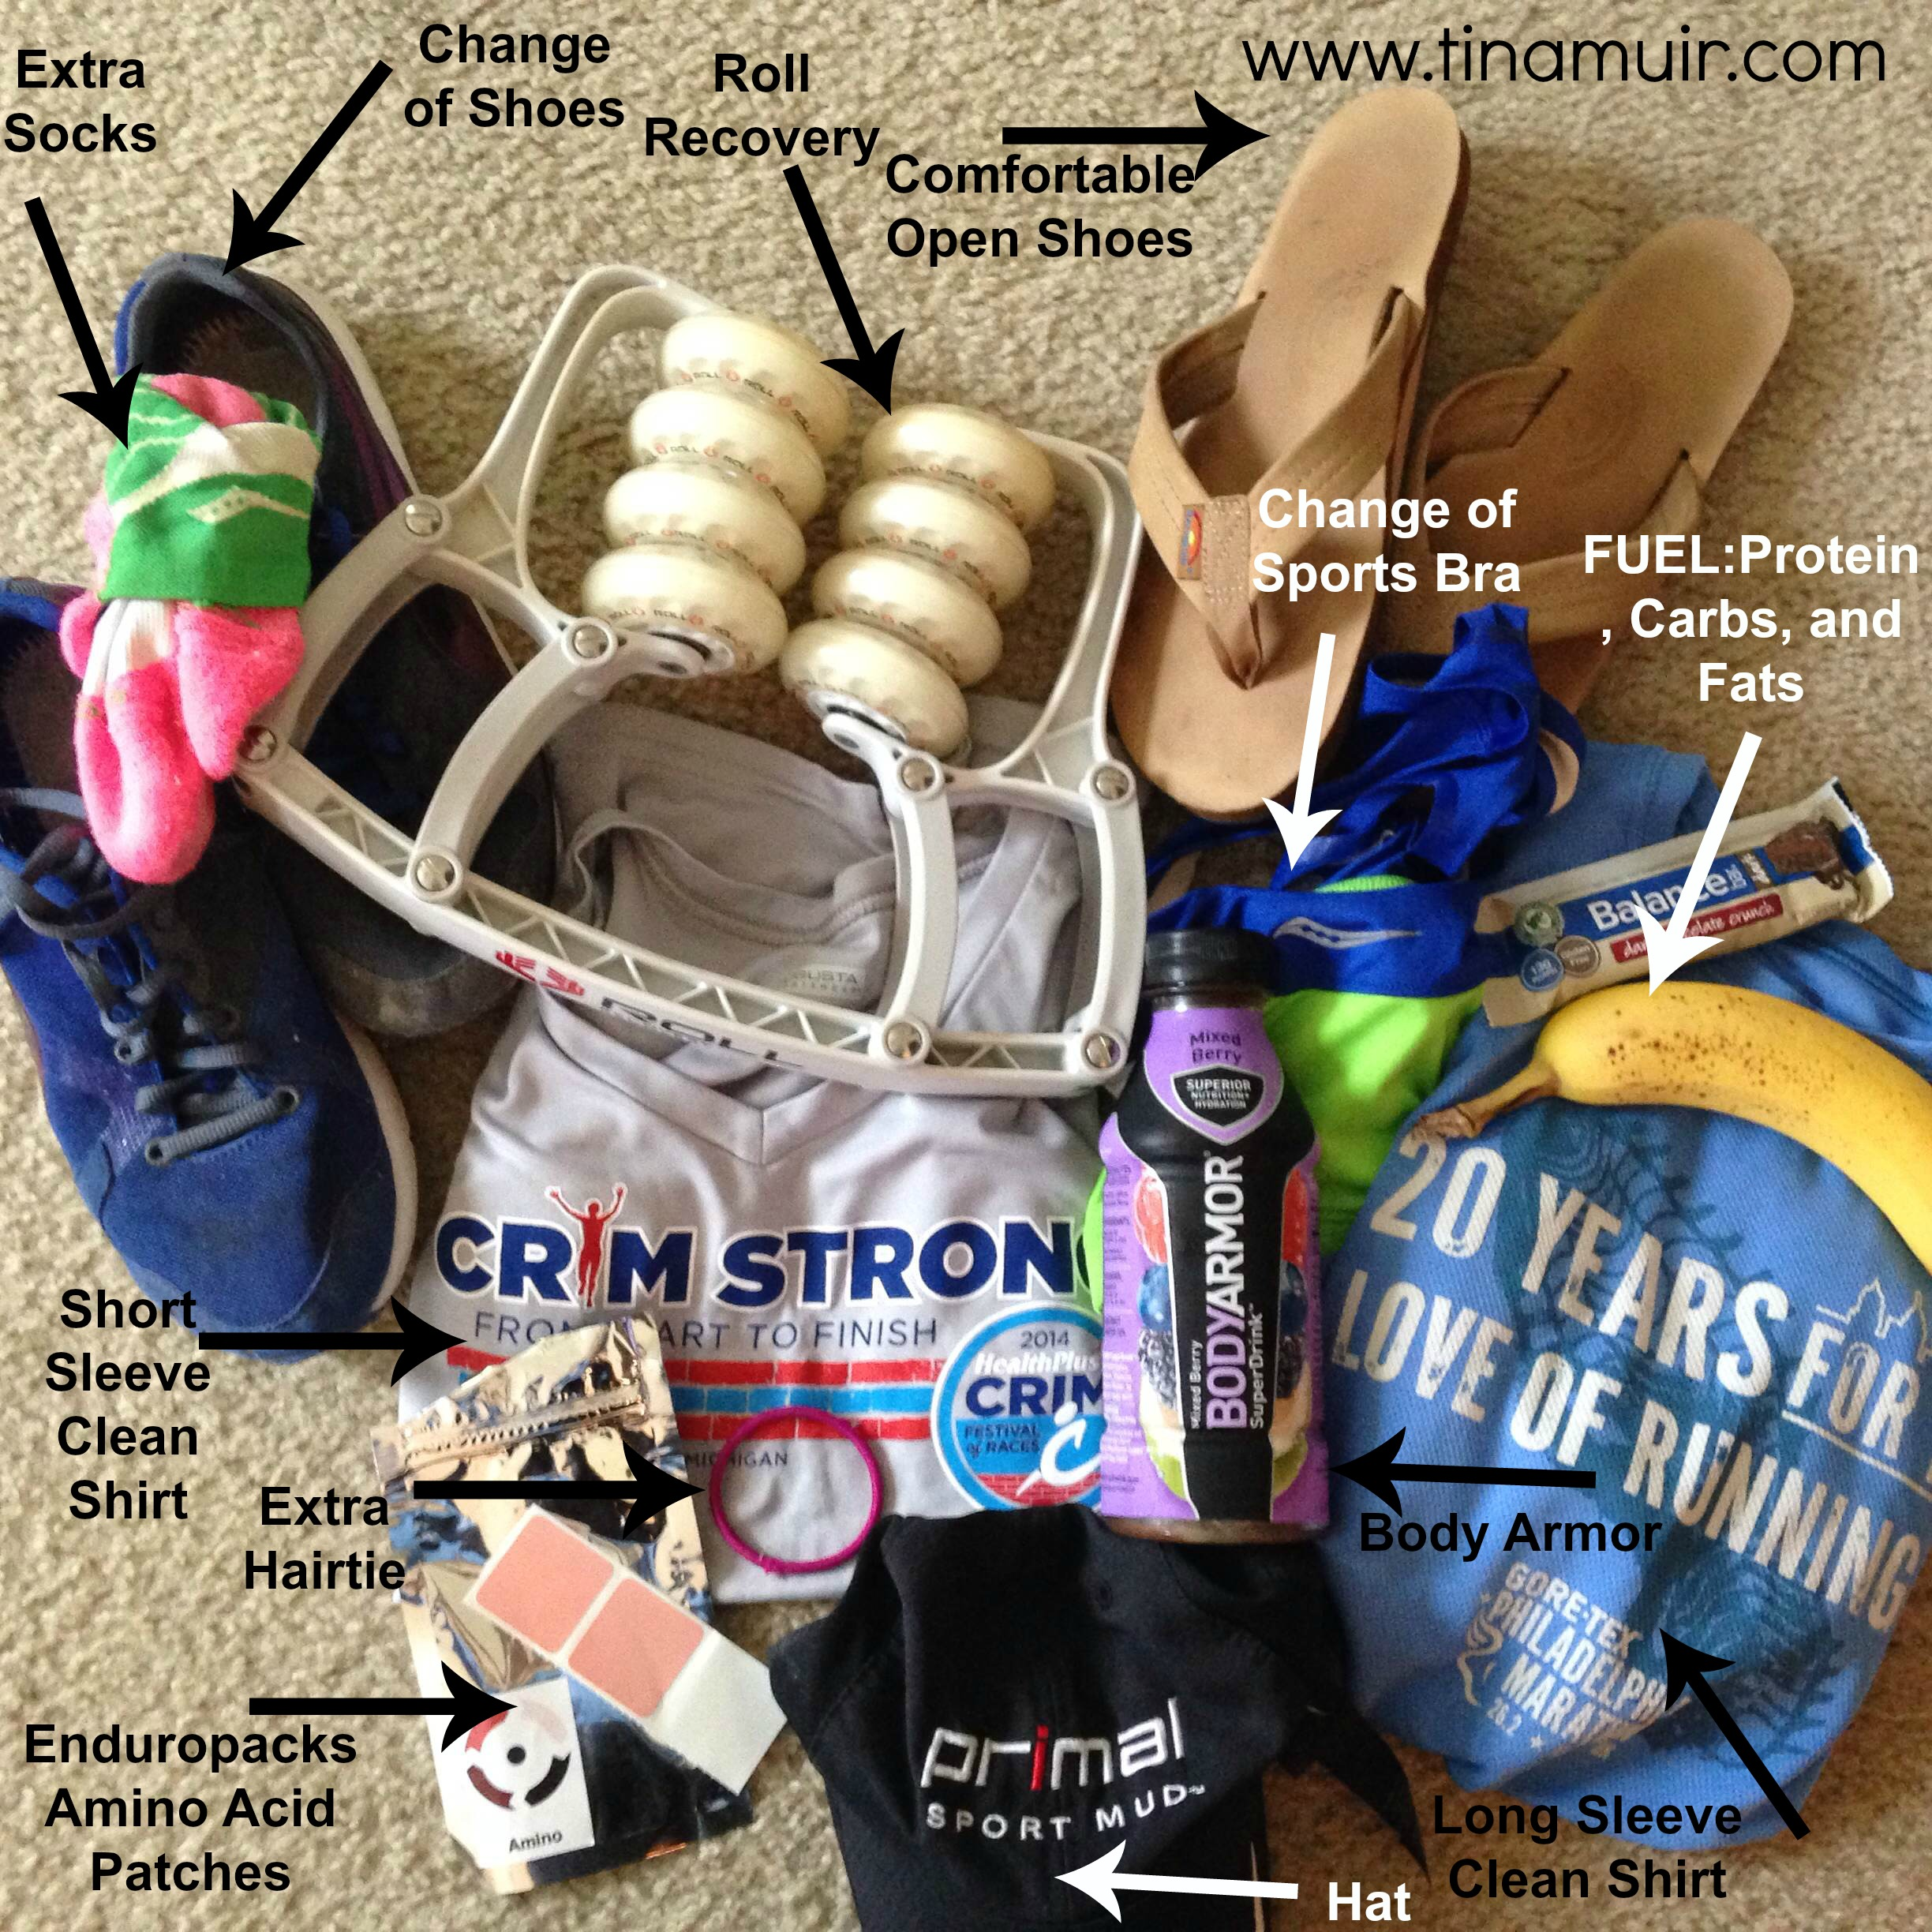 25 Must Have Items for Race Day- An Elite Guide